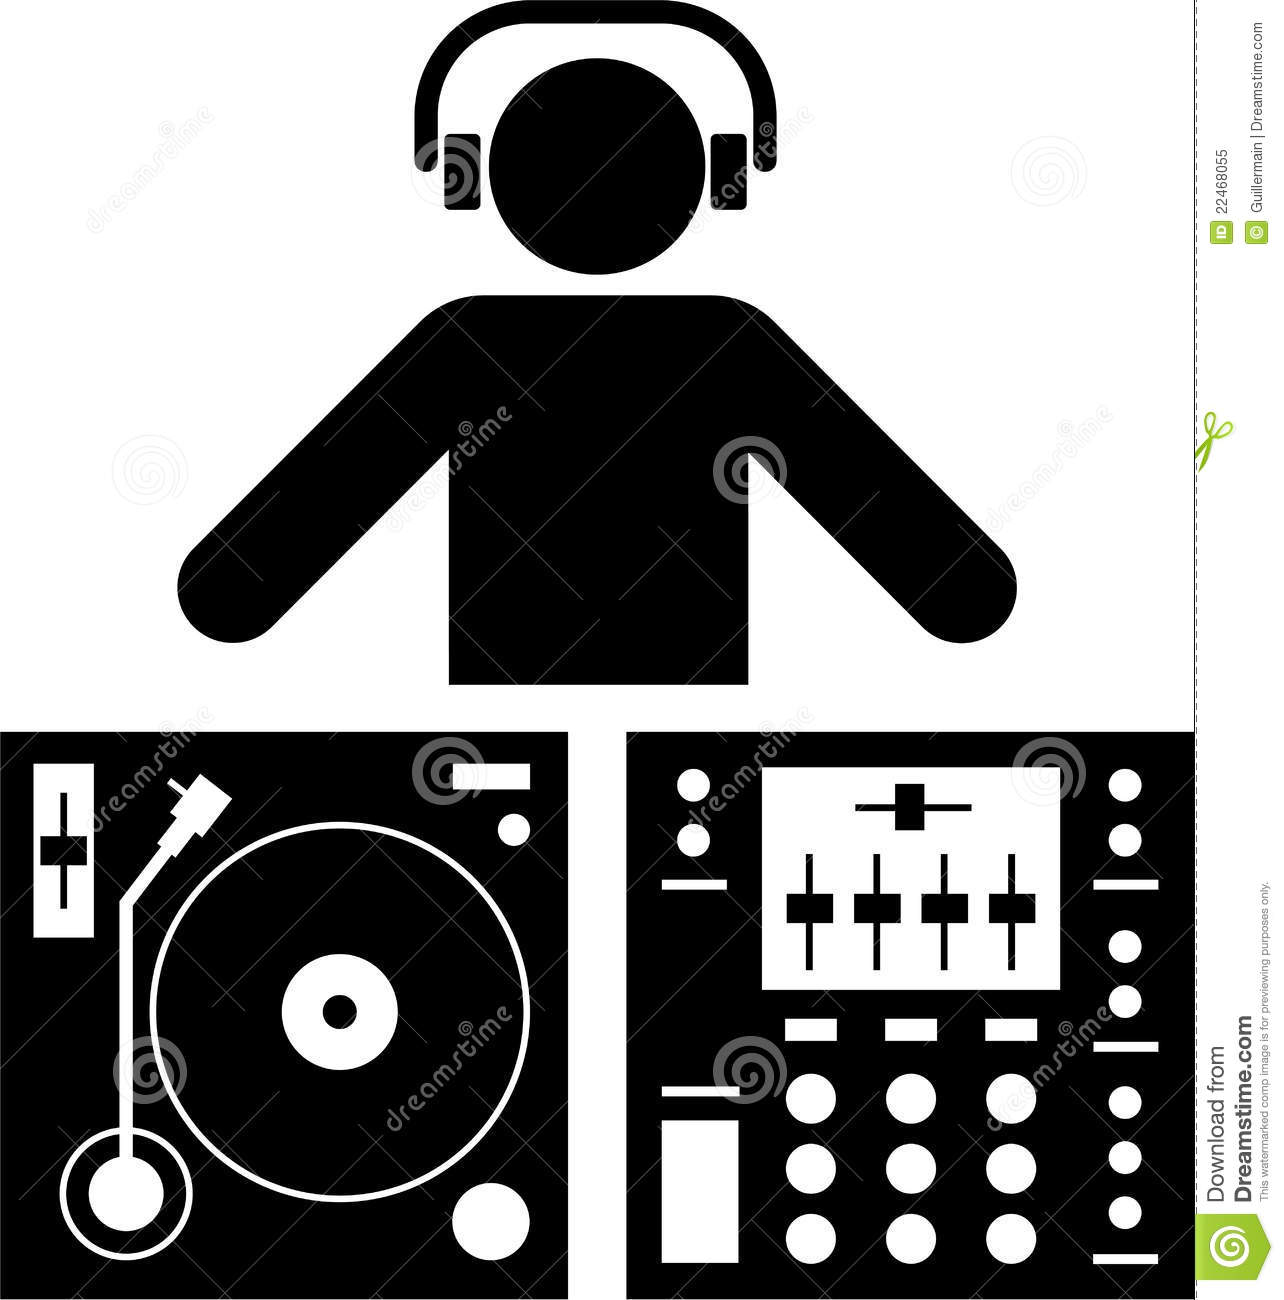 Pictogramme Du Dj Illustration De Vecteur Illustration Du Musique 22468055